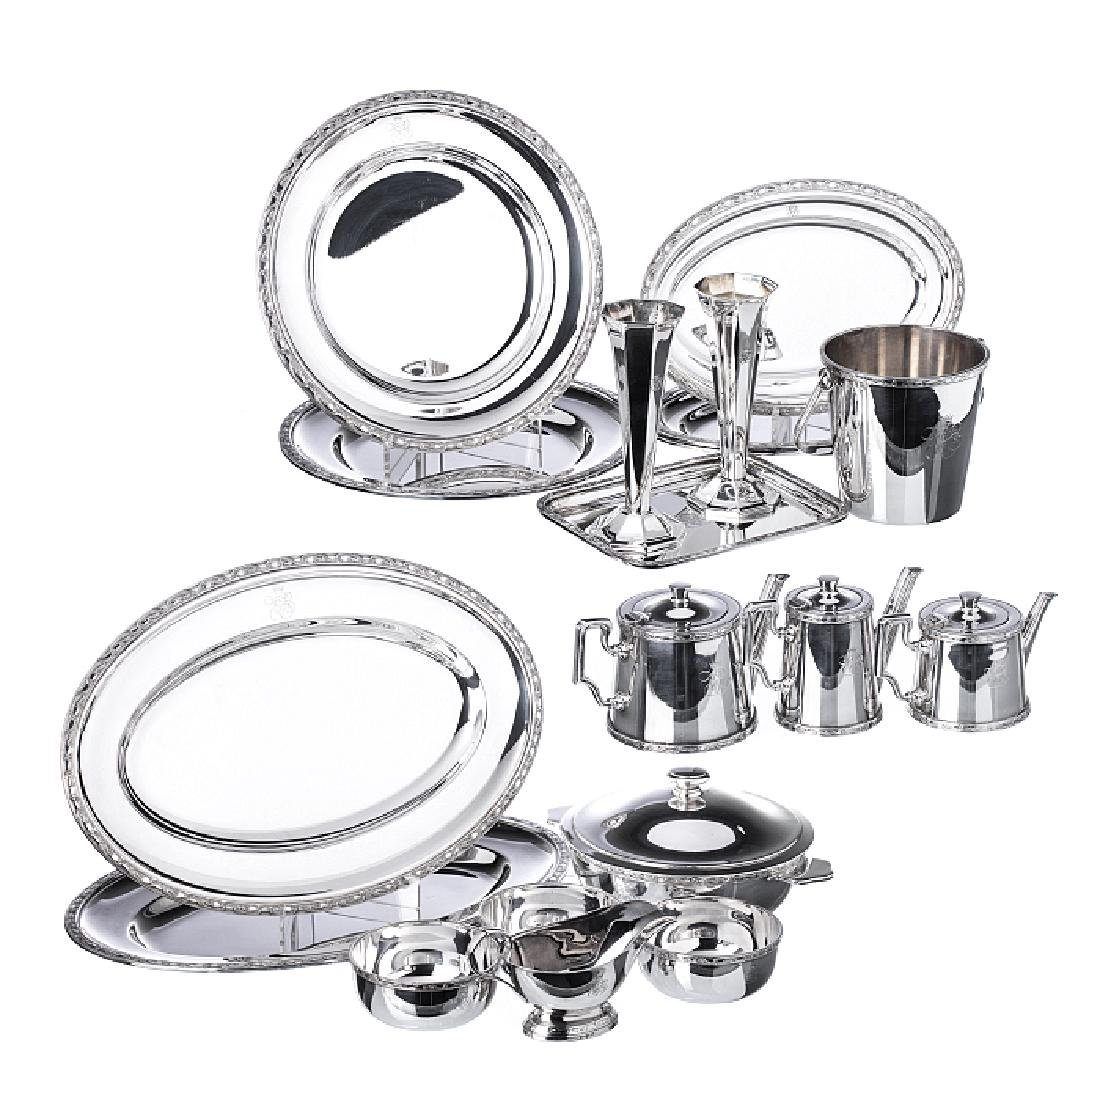 ERCUIS - Orient Express set in silver plate